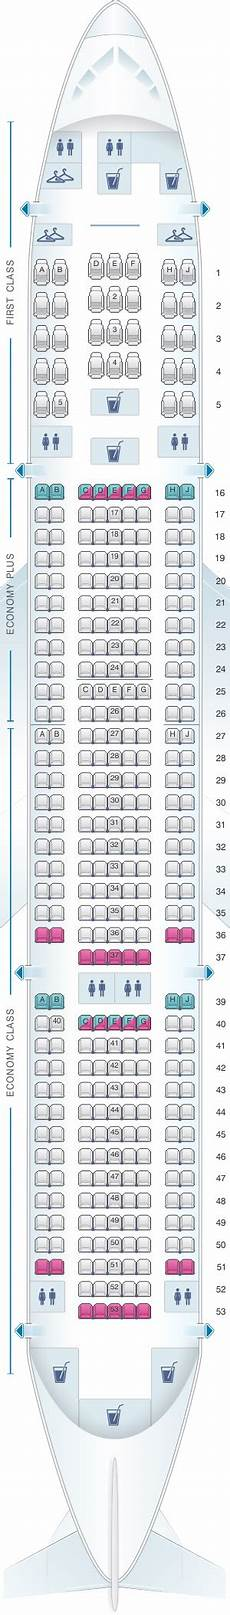 United Airlines Seating Chart 777 International Seat Map United Airlines Boeing B777 200 777 Version 4